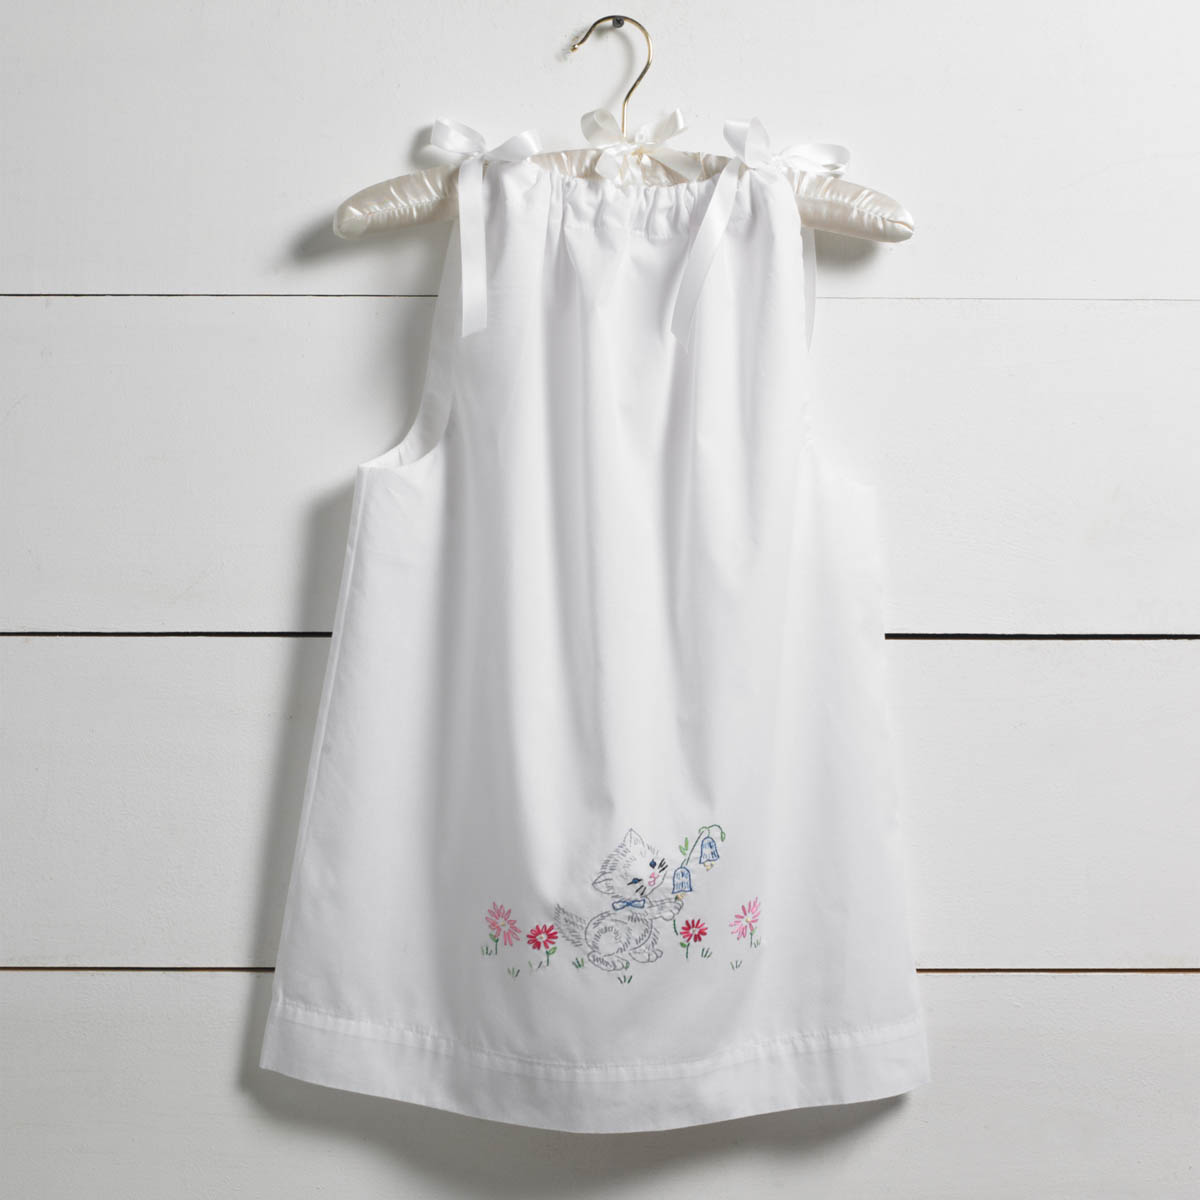 Bucilla ® Stamped Cross Stitch & Embroidery - Pillowcase Dress - Kitten